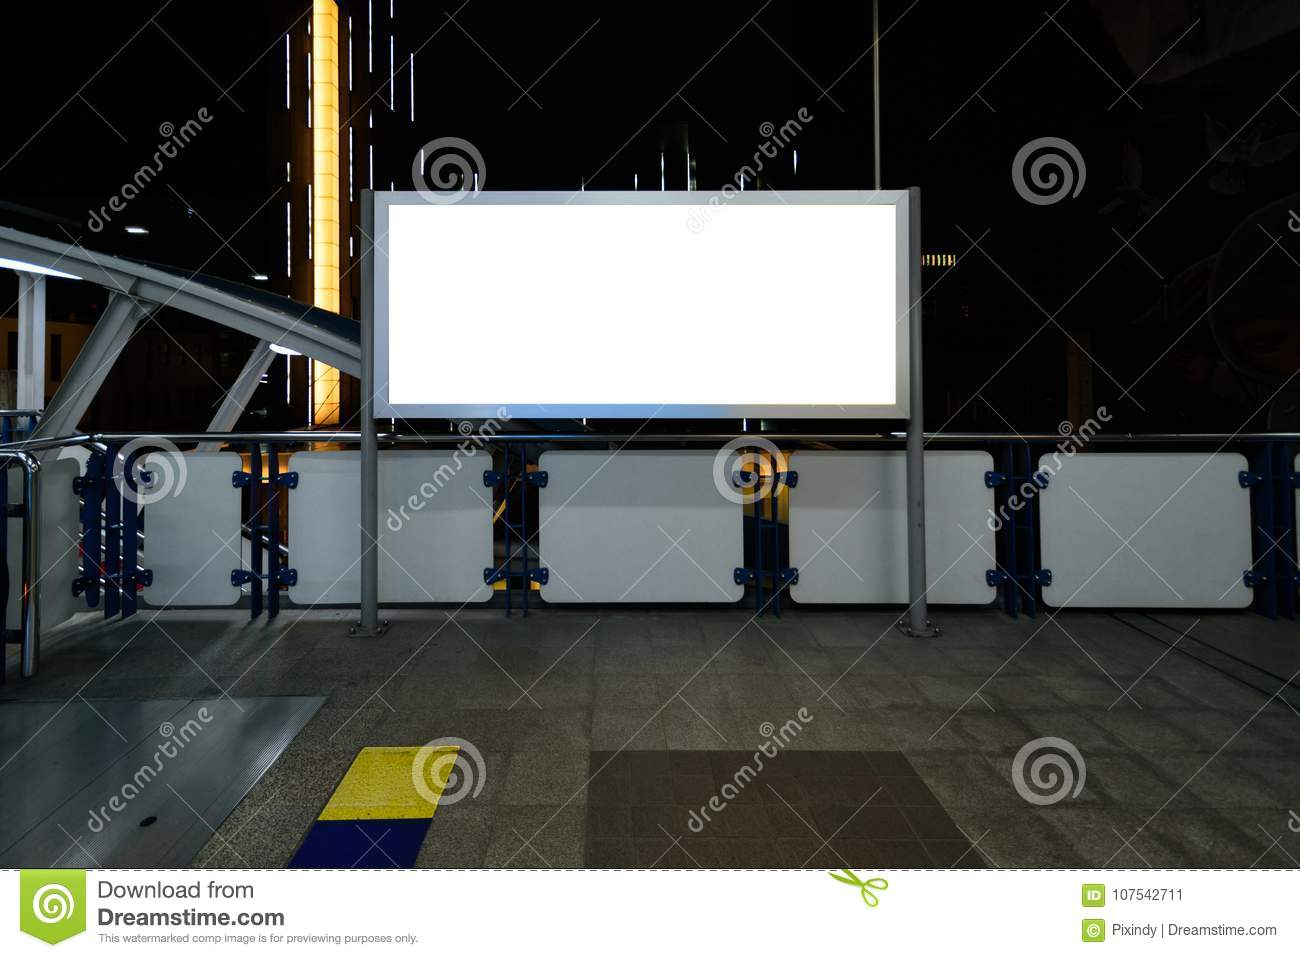 Blank billboard or poster for advertising.